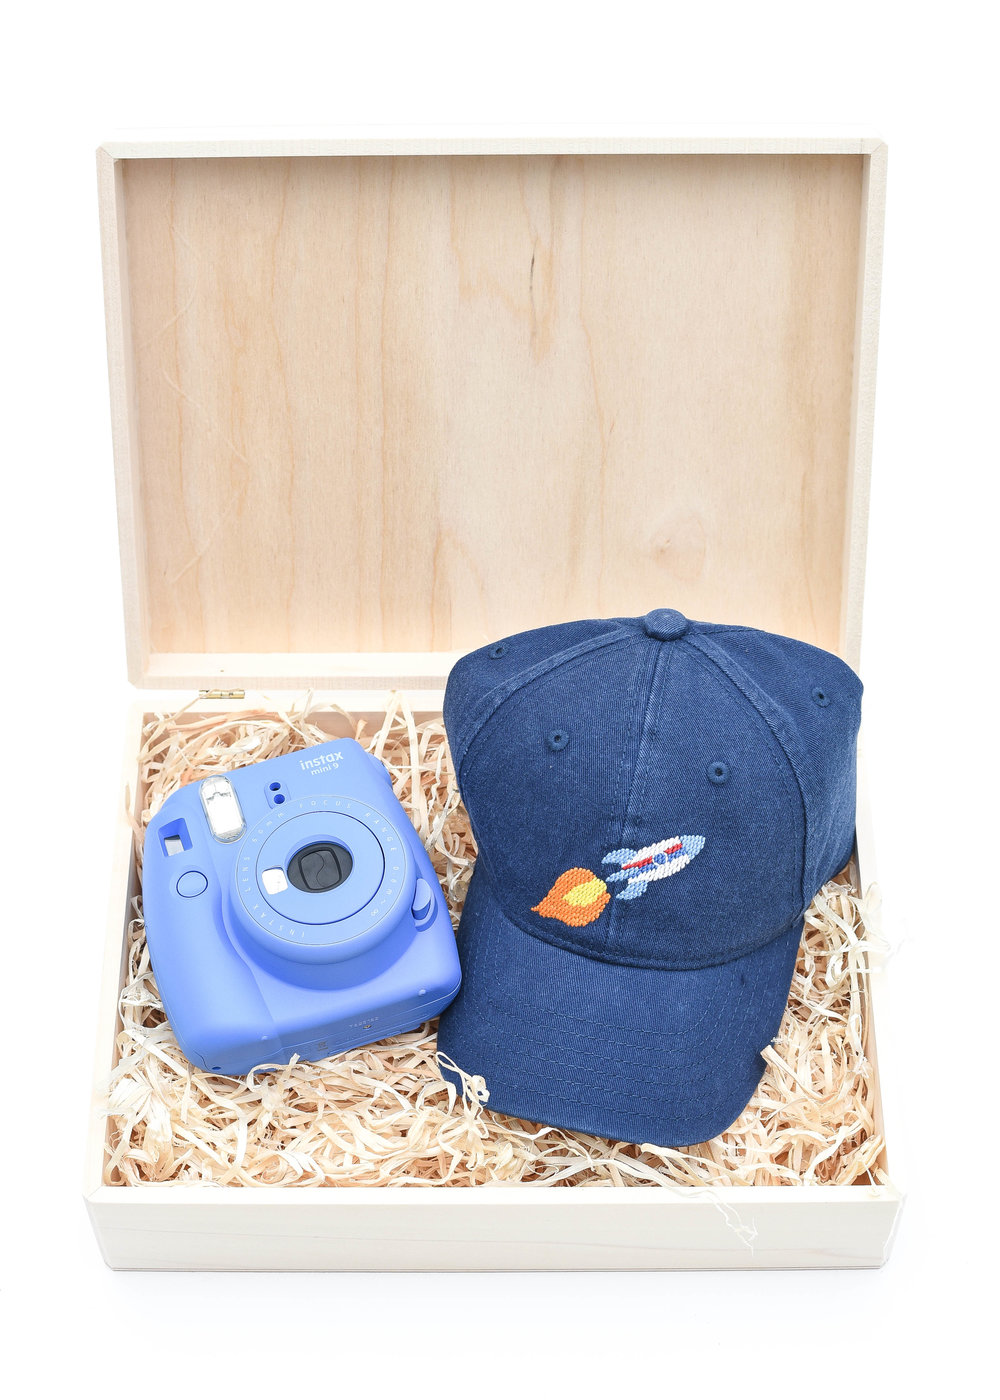 Gift Set For Boys - My favorite thing to gift my kids, is the opportunity of exploring and make-believe.  And what better way to encourage this than with a hat that needs to be worn in, and an instant camera to document all the adventures!  And don't think for a minute this is just for the boys, the girls on your list will love it too!  Camera and hat can easily be customized to a different color or style!  For purchase info, click links below:L:R  | Instax Mini 9 Instant Camera | Kid's Needlepoint HatOur go to gift wrap this holiday, shown here:Unfinished Walnut Box (2 pack) | Aspen Wood Excelsior (BULK)Only needing to wrap one present?Individual Unfinished Walnut Box | Aspen Wood Excelsior (4 oz bag)